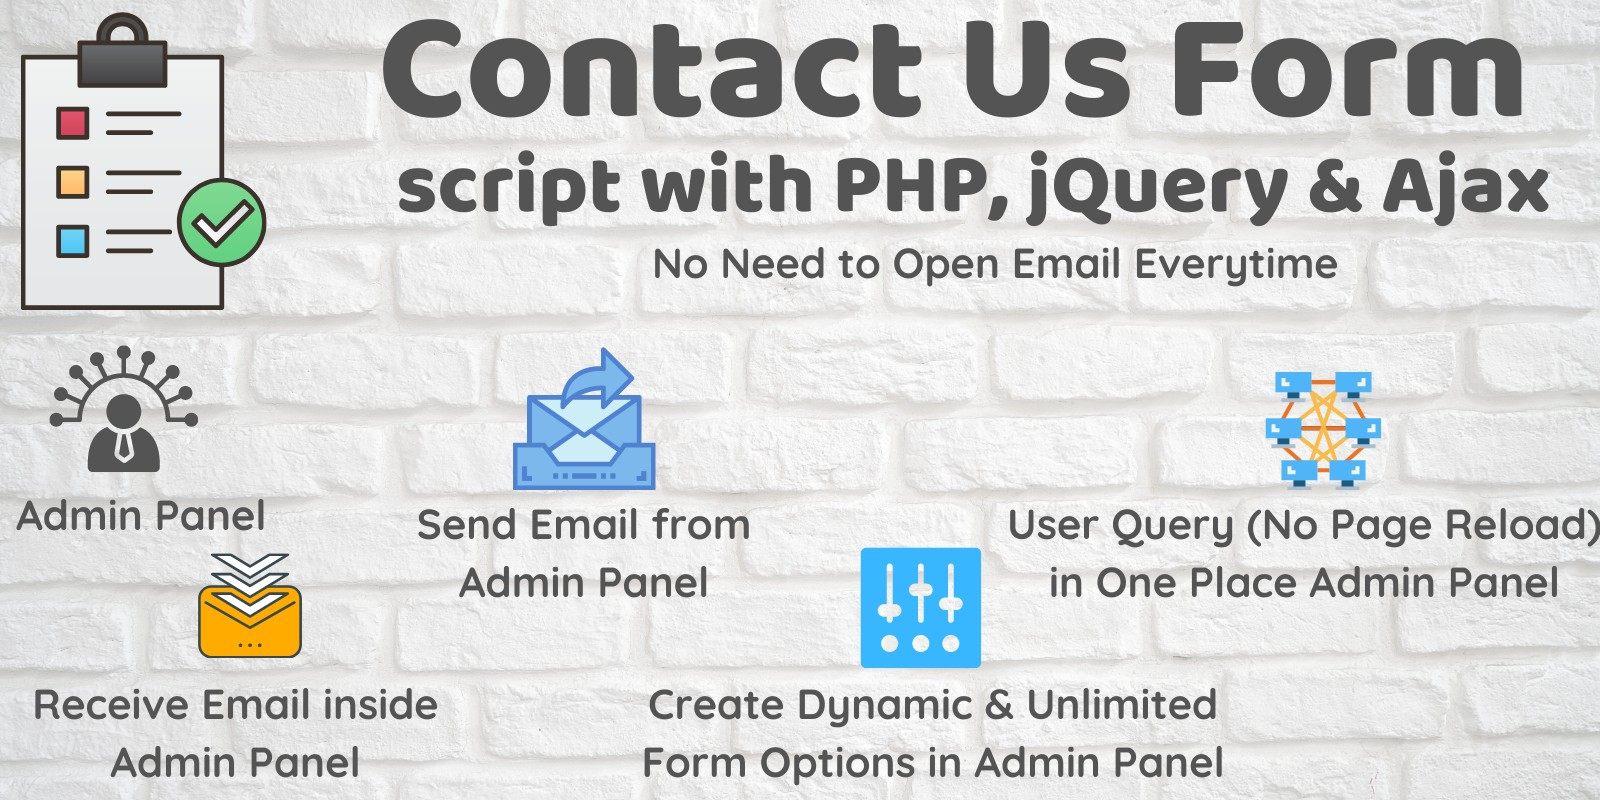 Contact Us Form with Admin Panel